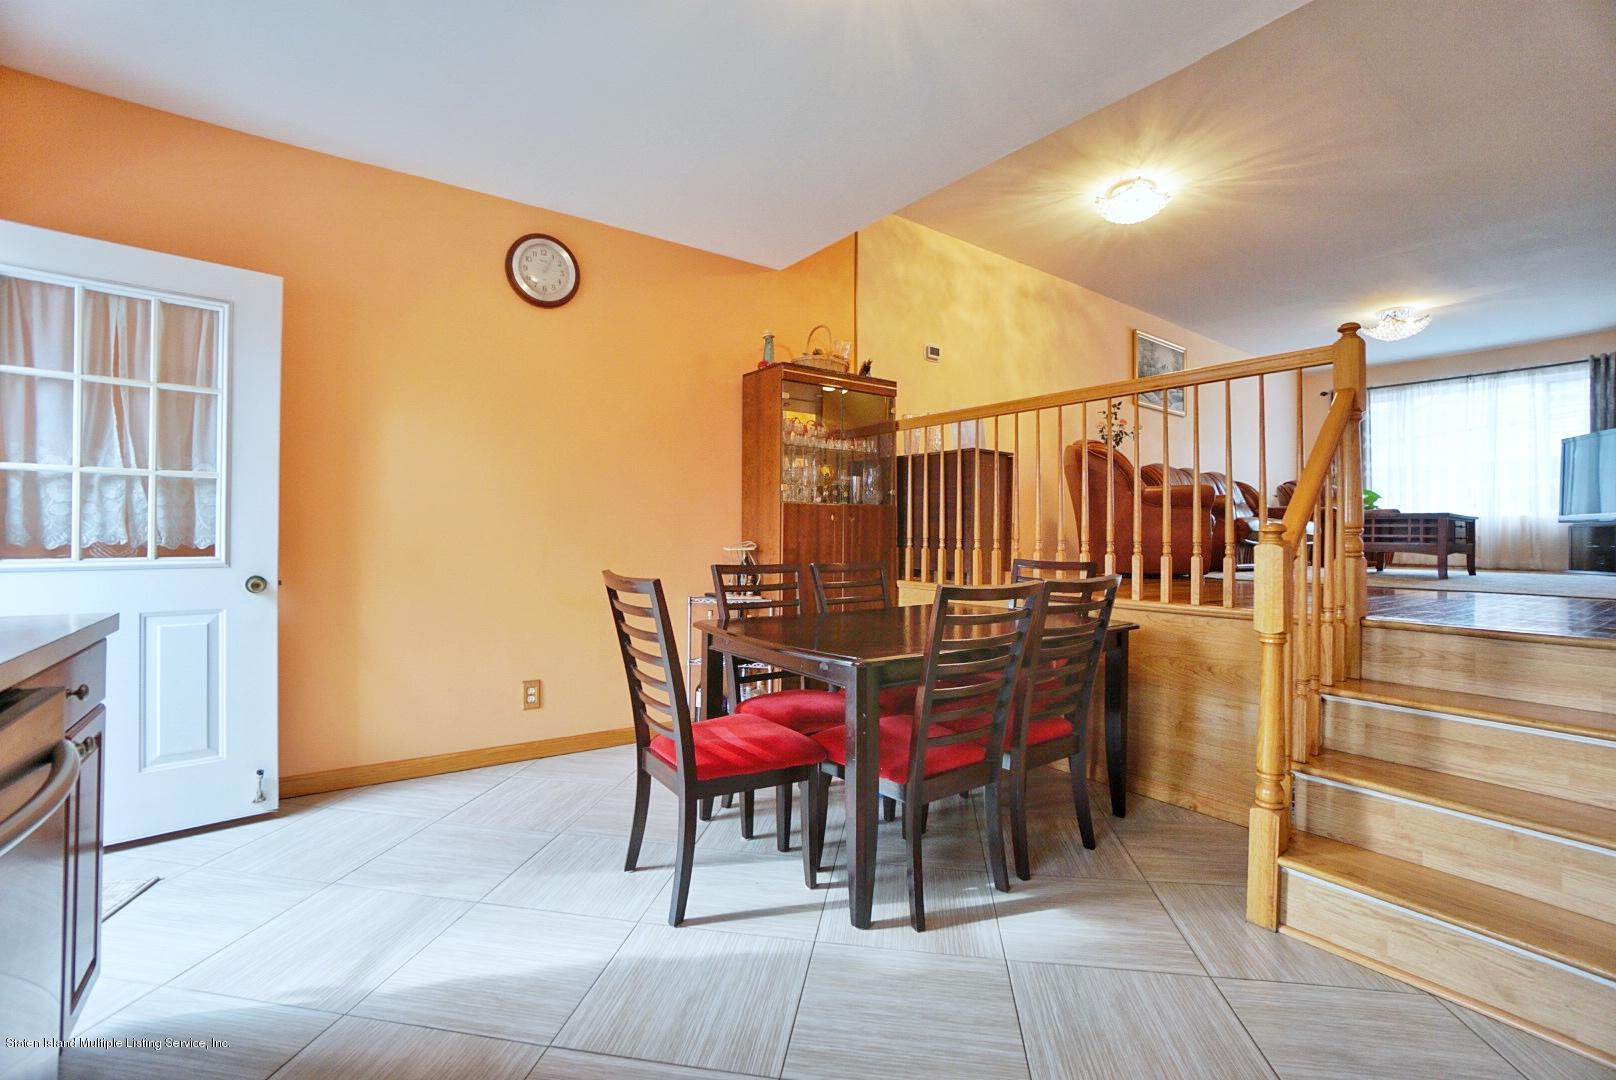 Single Family - Attached 30 Cranberry Court  Staten Island, NY 10309, MLS-1135421-13